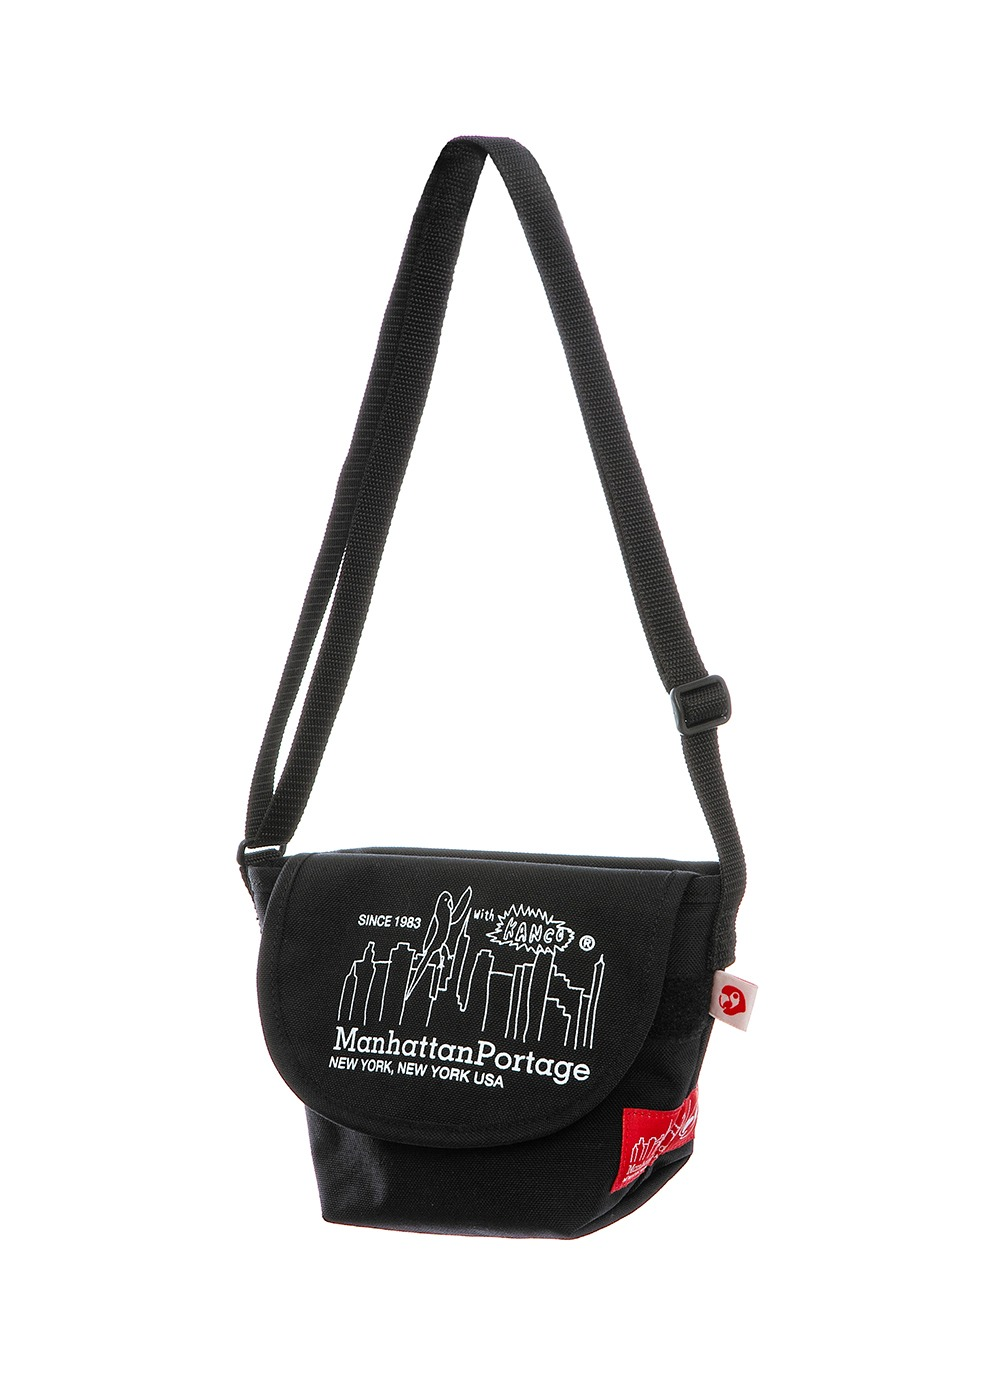 KANCO X MANHATTAN PORTAGE MINI MESSENGER BAG black